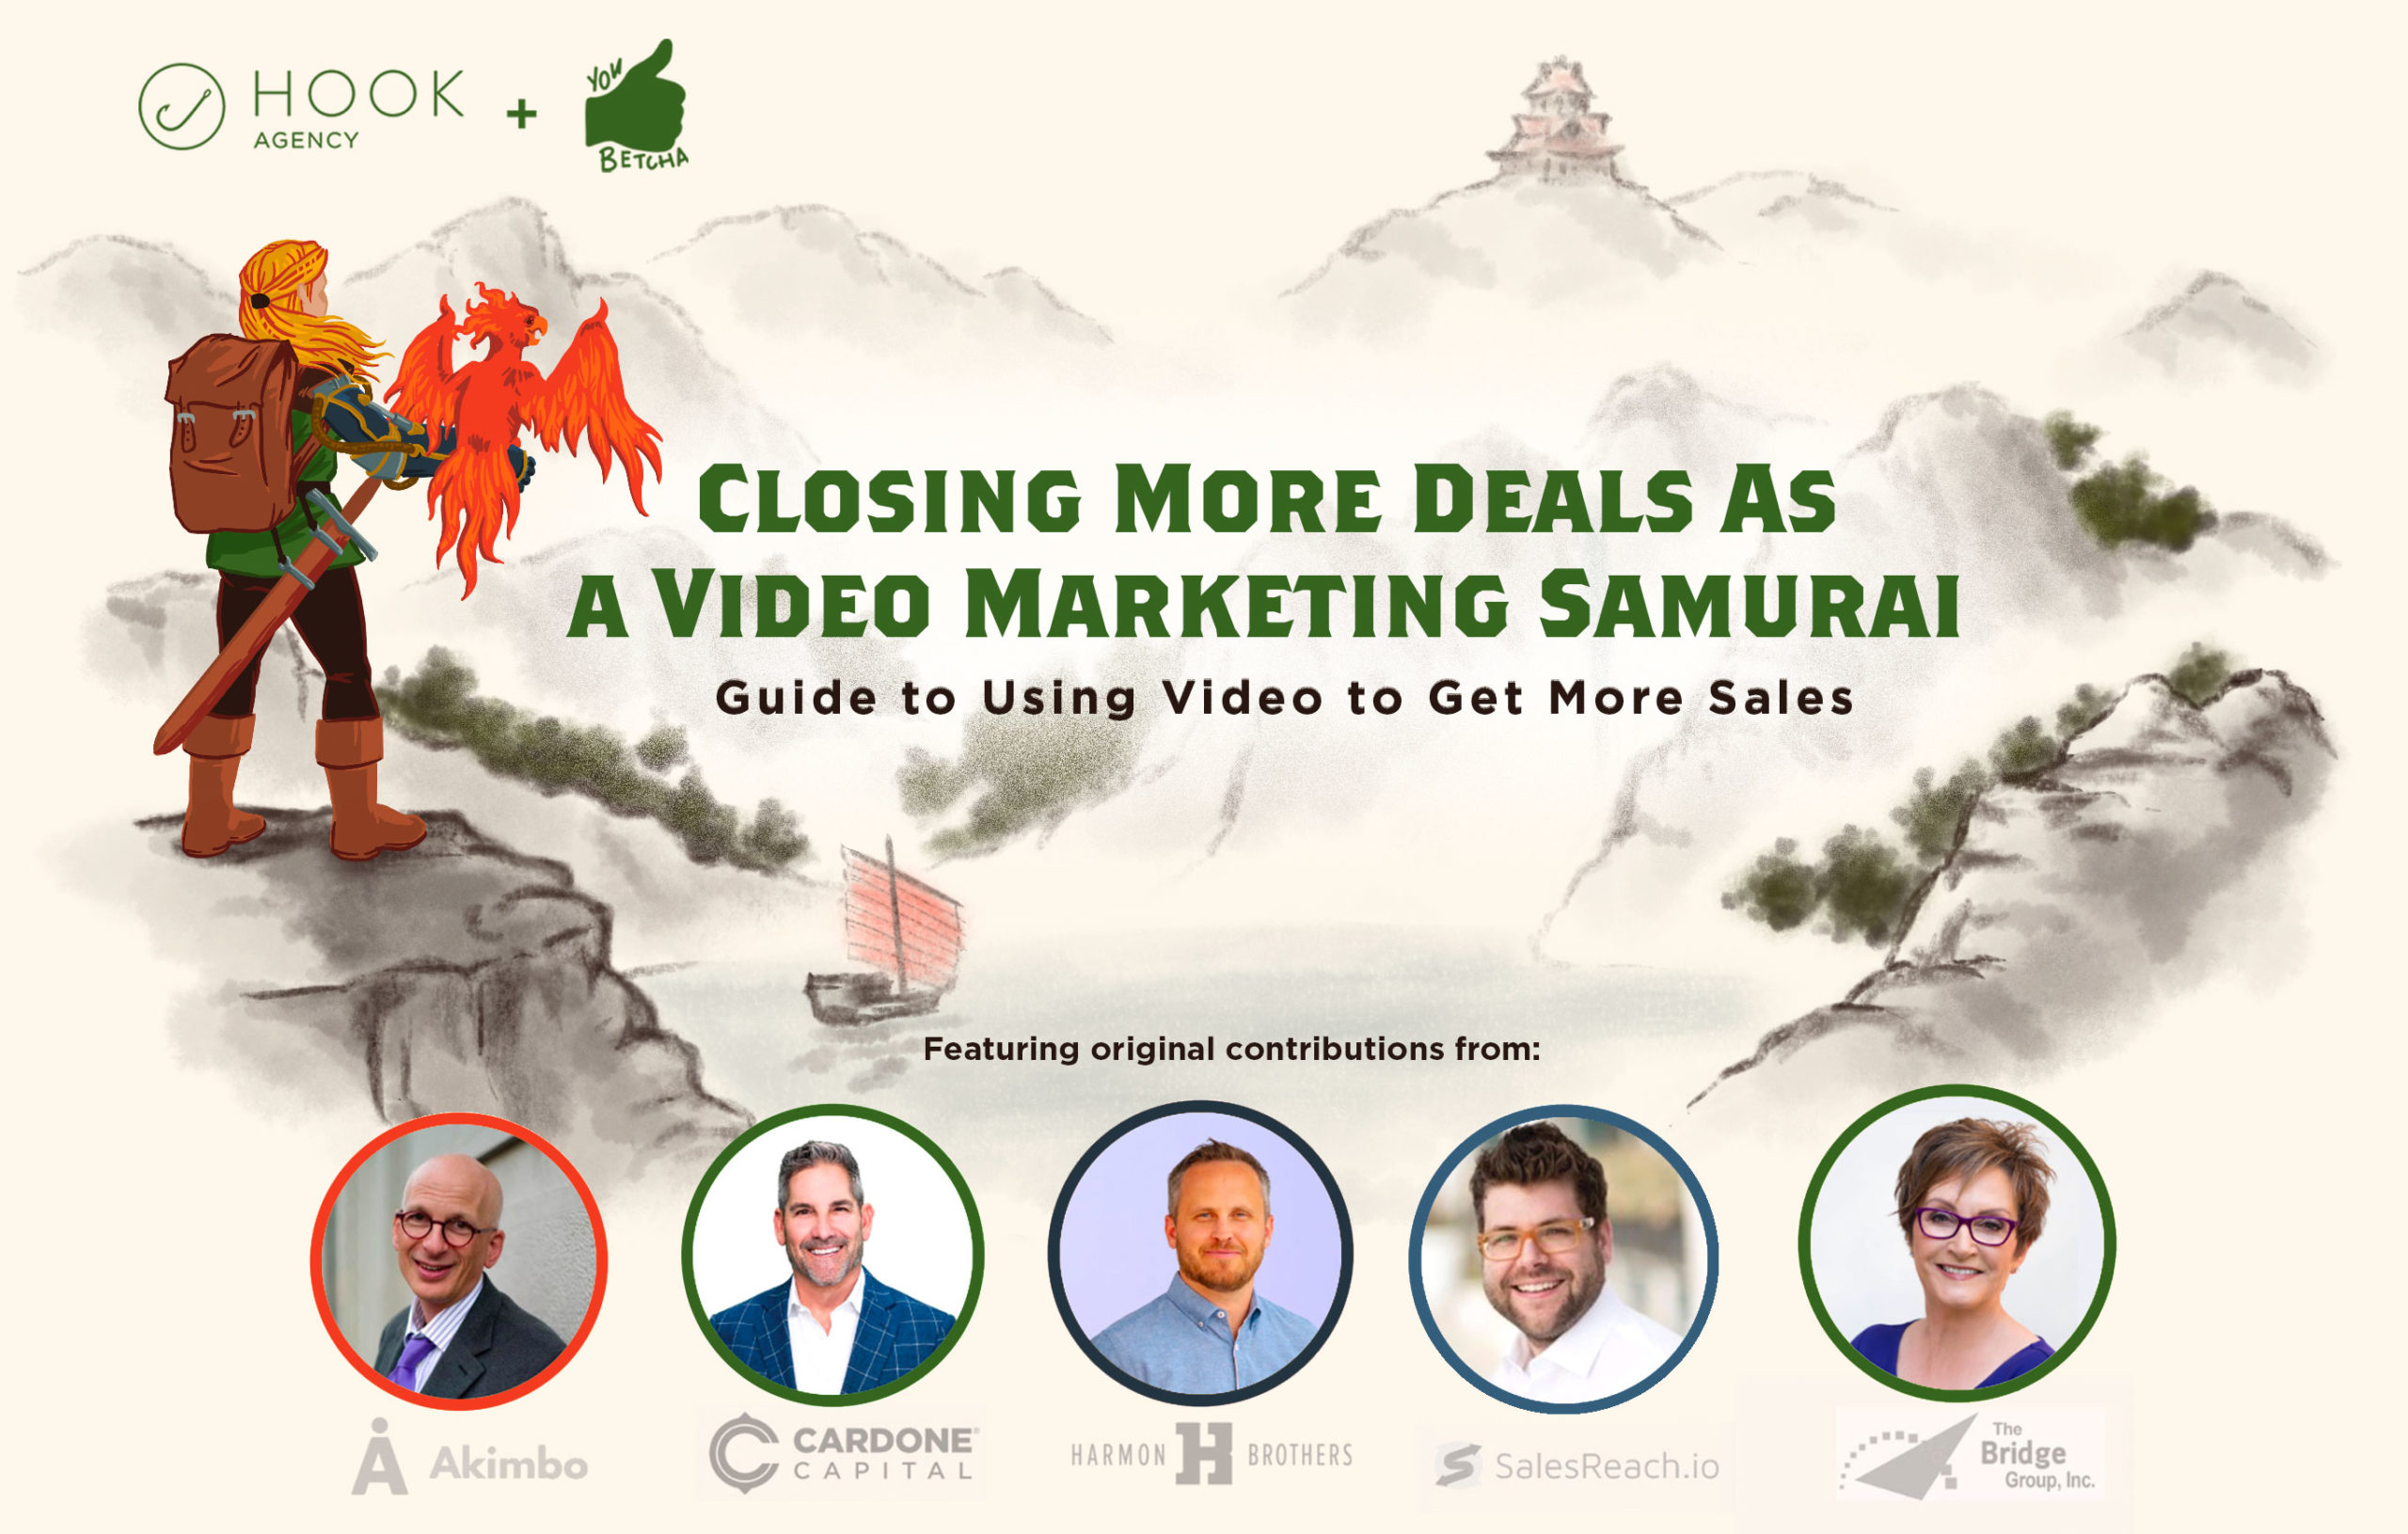 Closing More Deals as a Video Marketing Samurai – using video for sales guide, Hook Agency and You Betcha